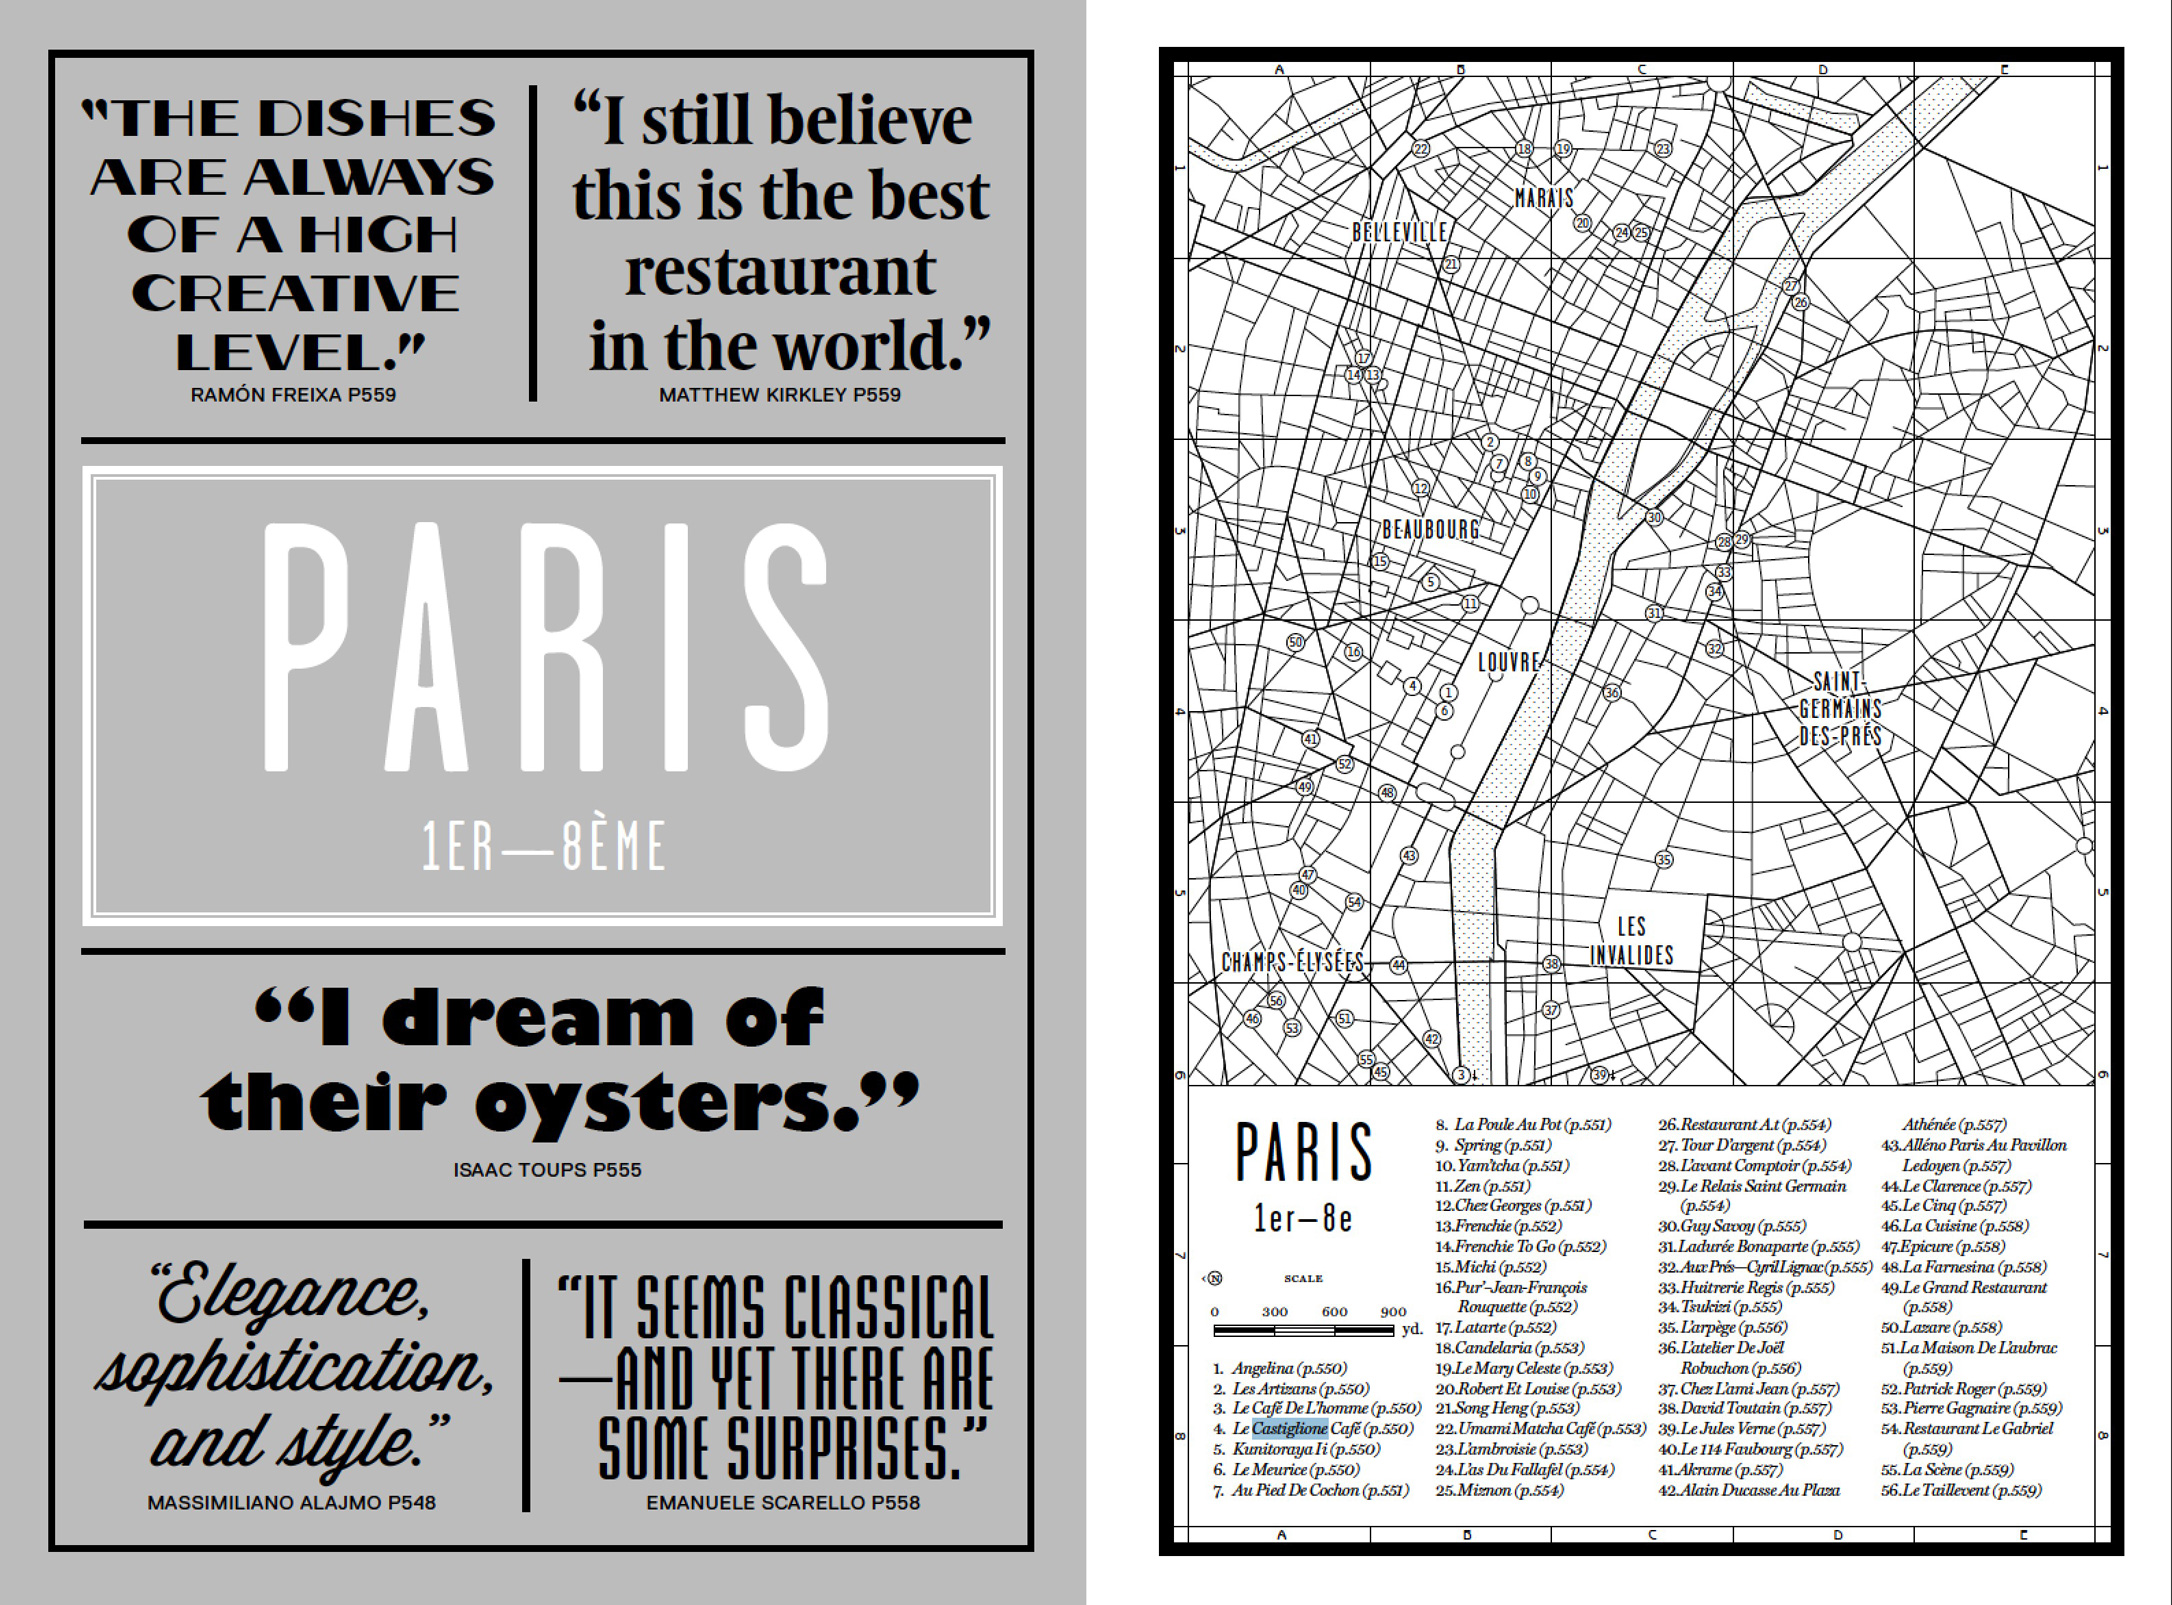 The Paris introduction from our new book Where Chefs Eat